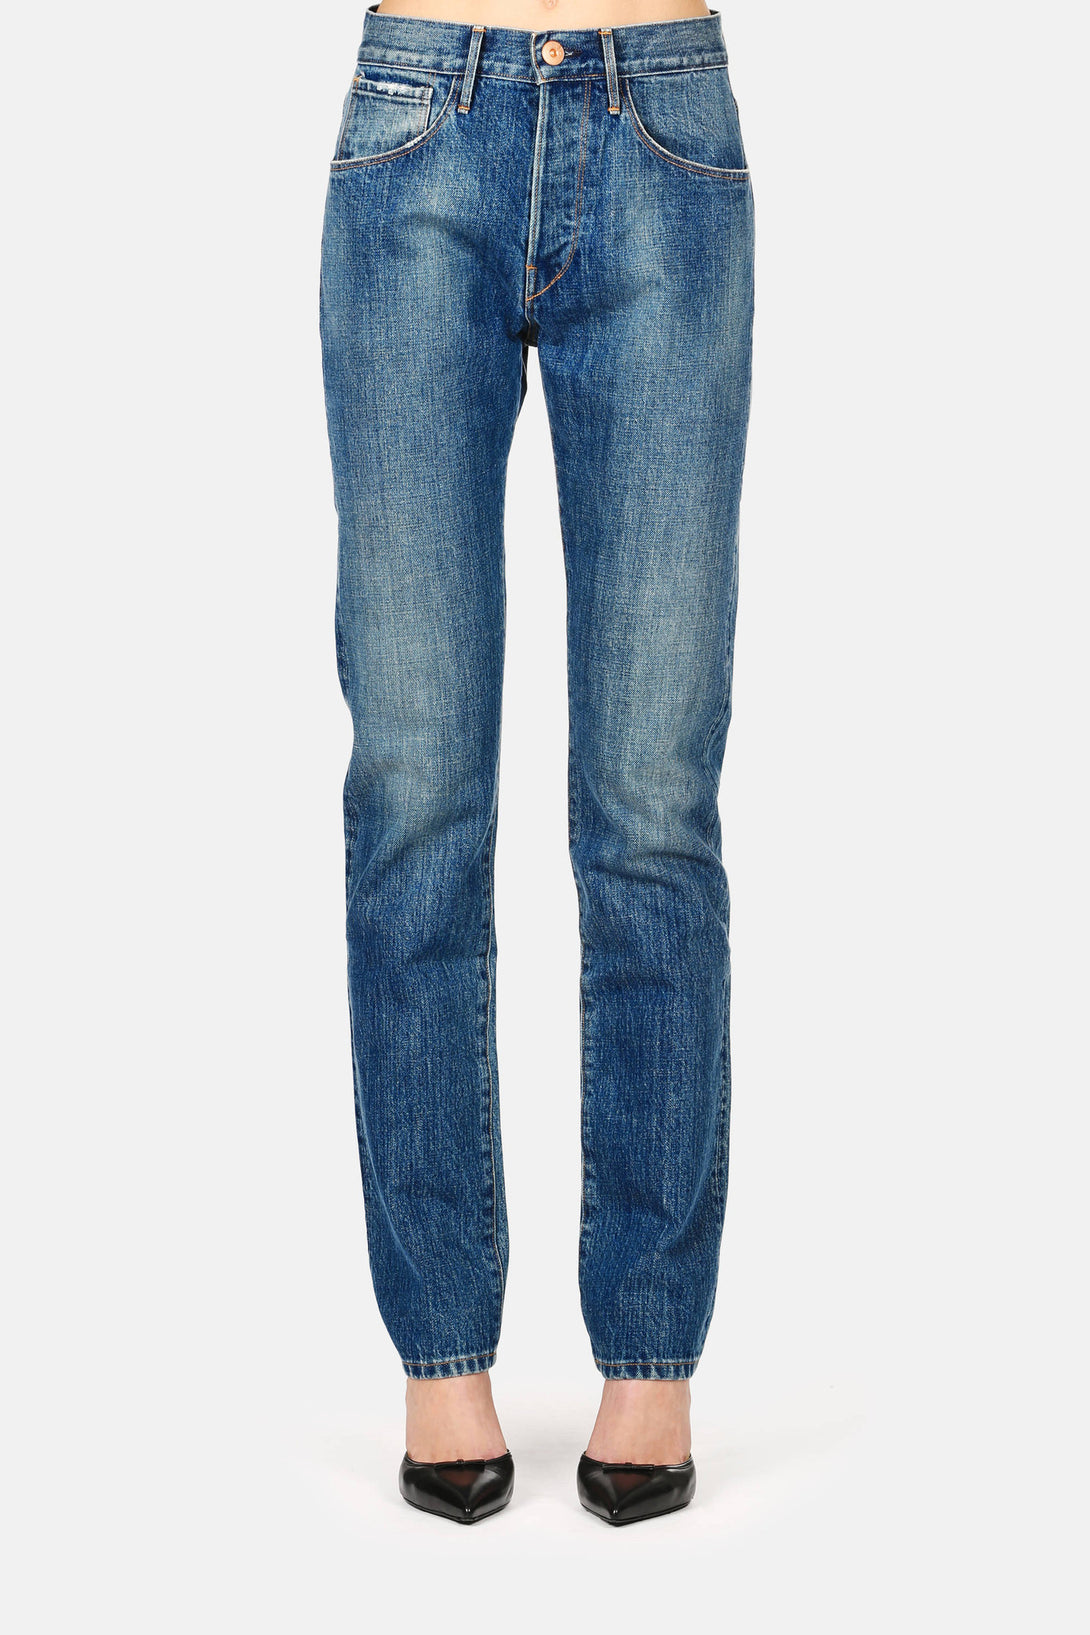 3 x 1 x The Line 5-Pocket High-Rise Jean - Allen Wash